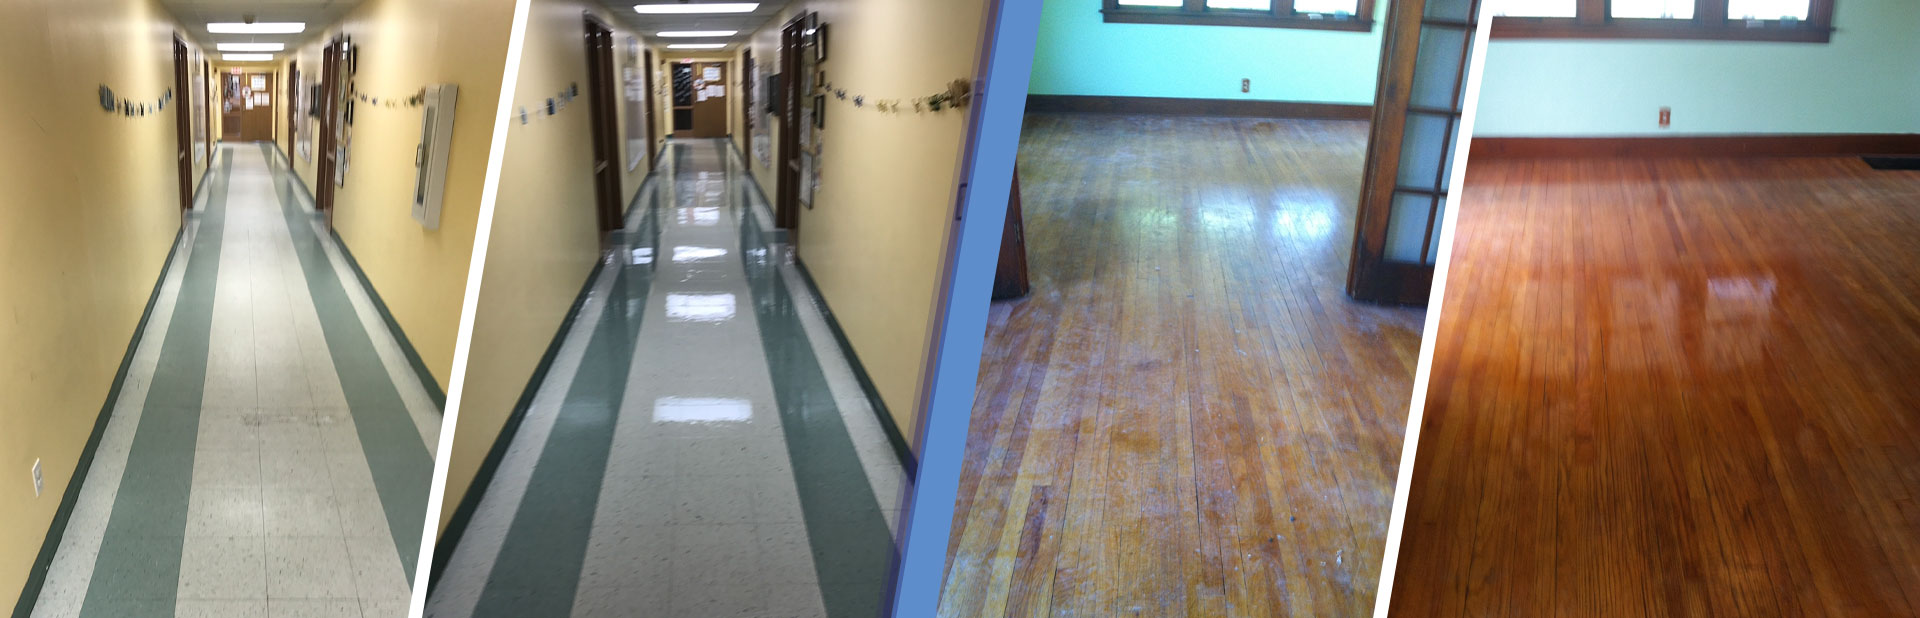 floor cleaning near me absolute cleaning systems